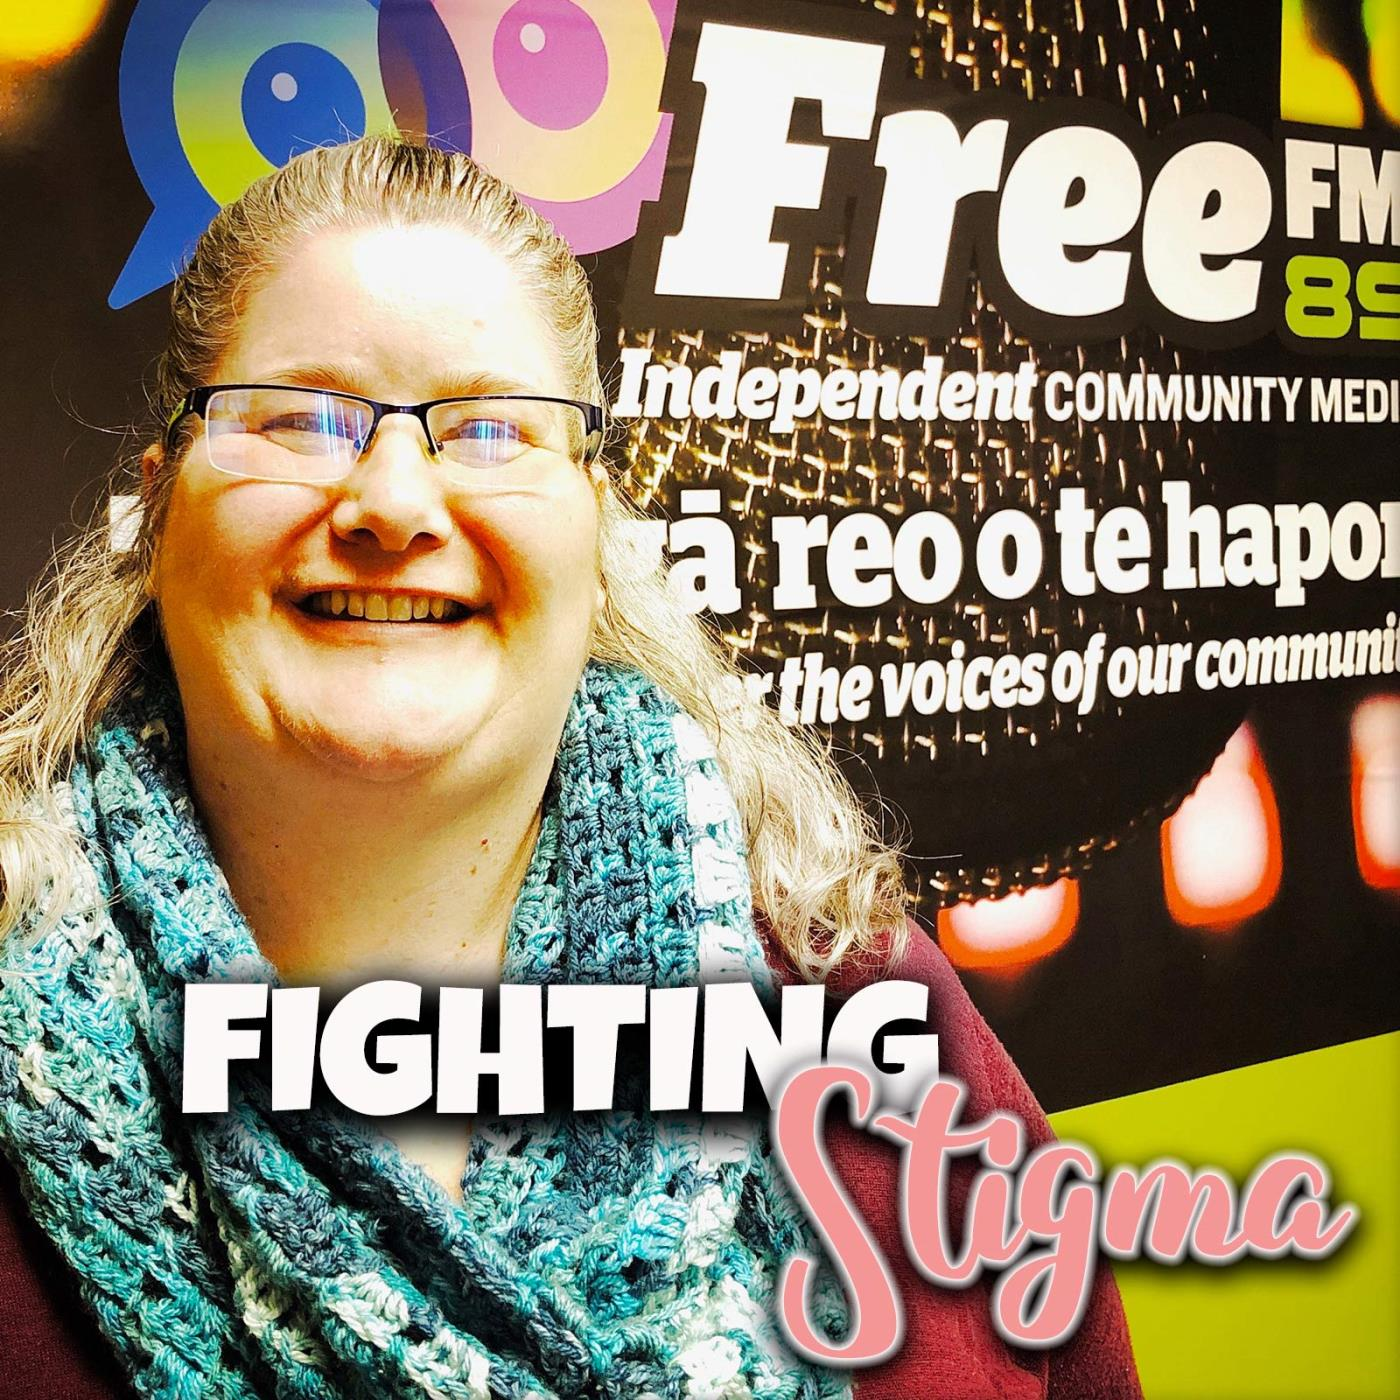 Fighting Stigma - 21-04-2021